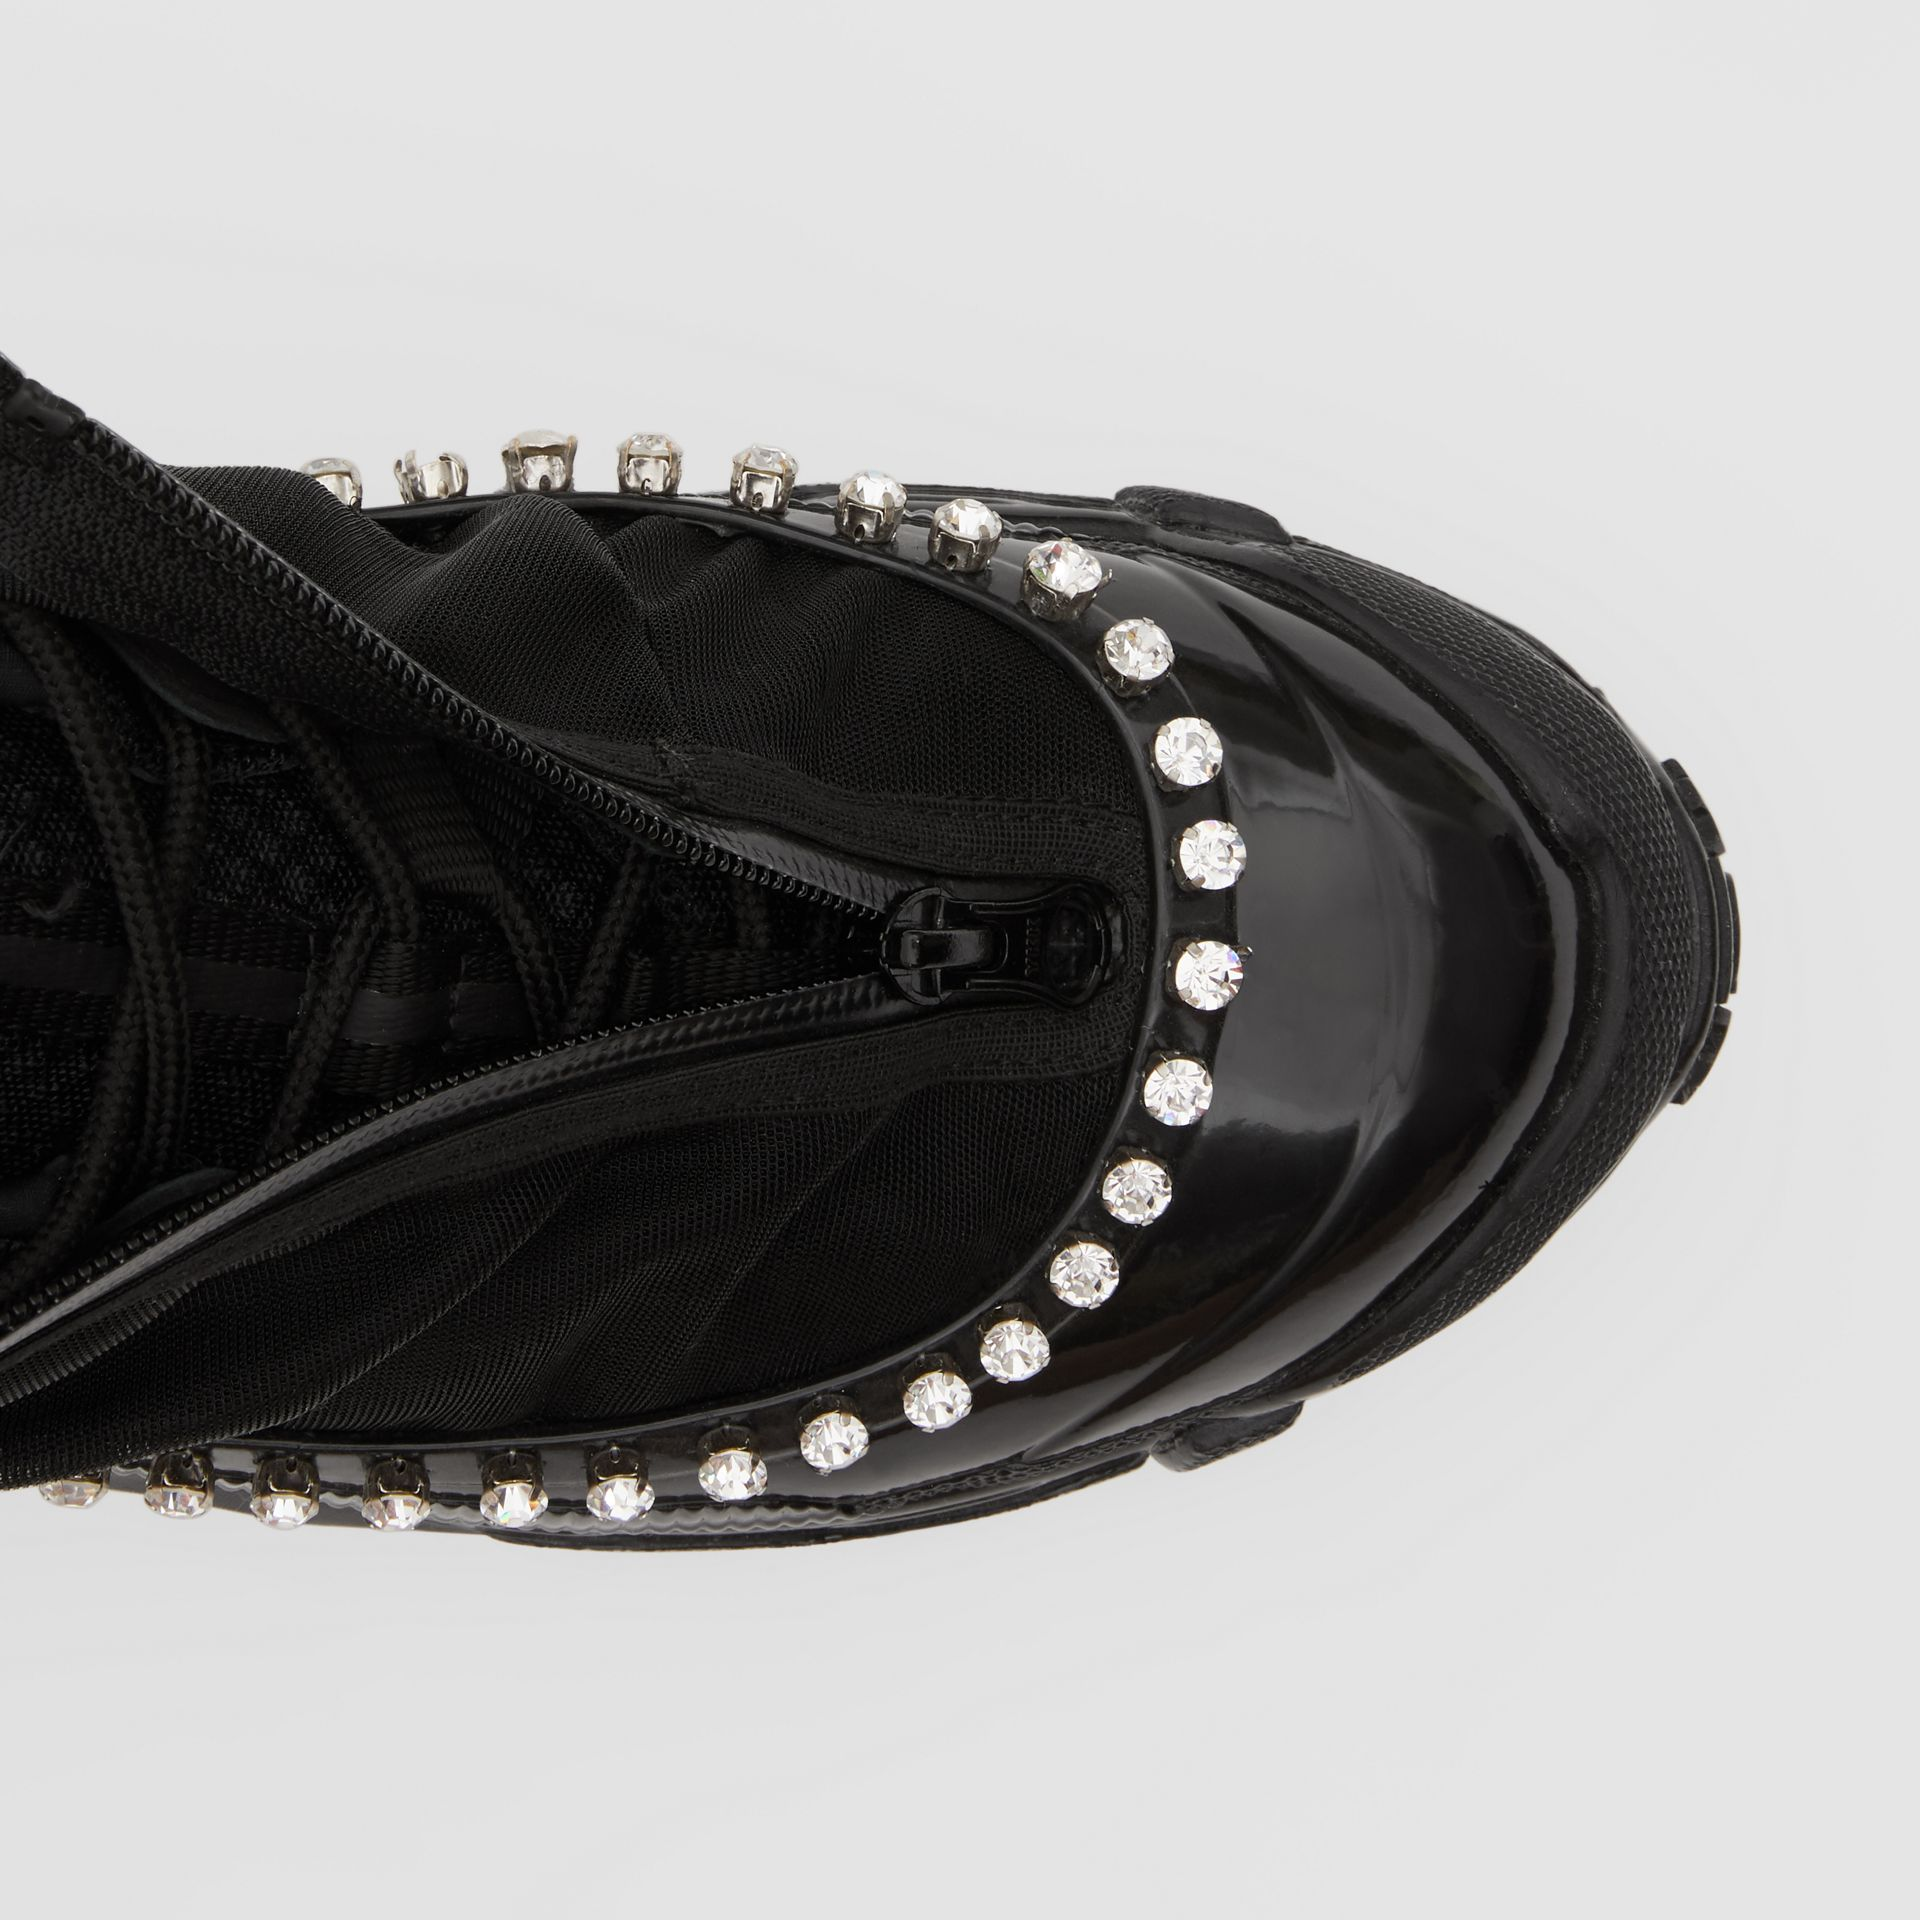 Crystal Detail Mesh, Nylon and Suede Arthur Sneakers in Black - Women | Burberry - gallery image 1